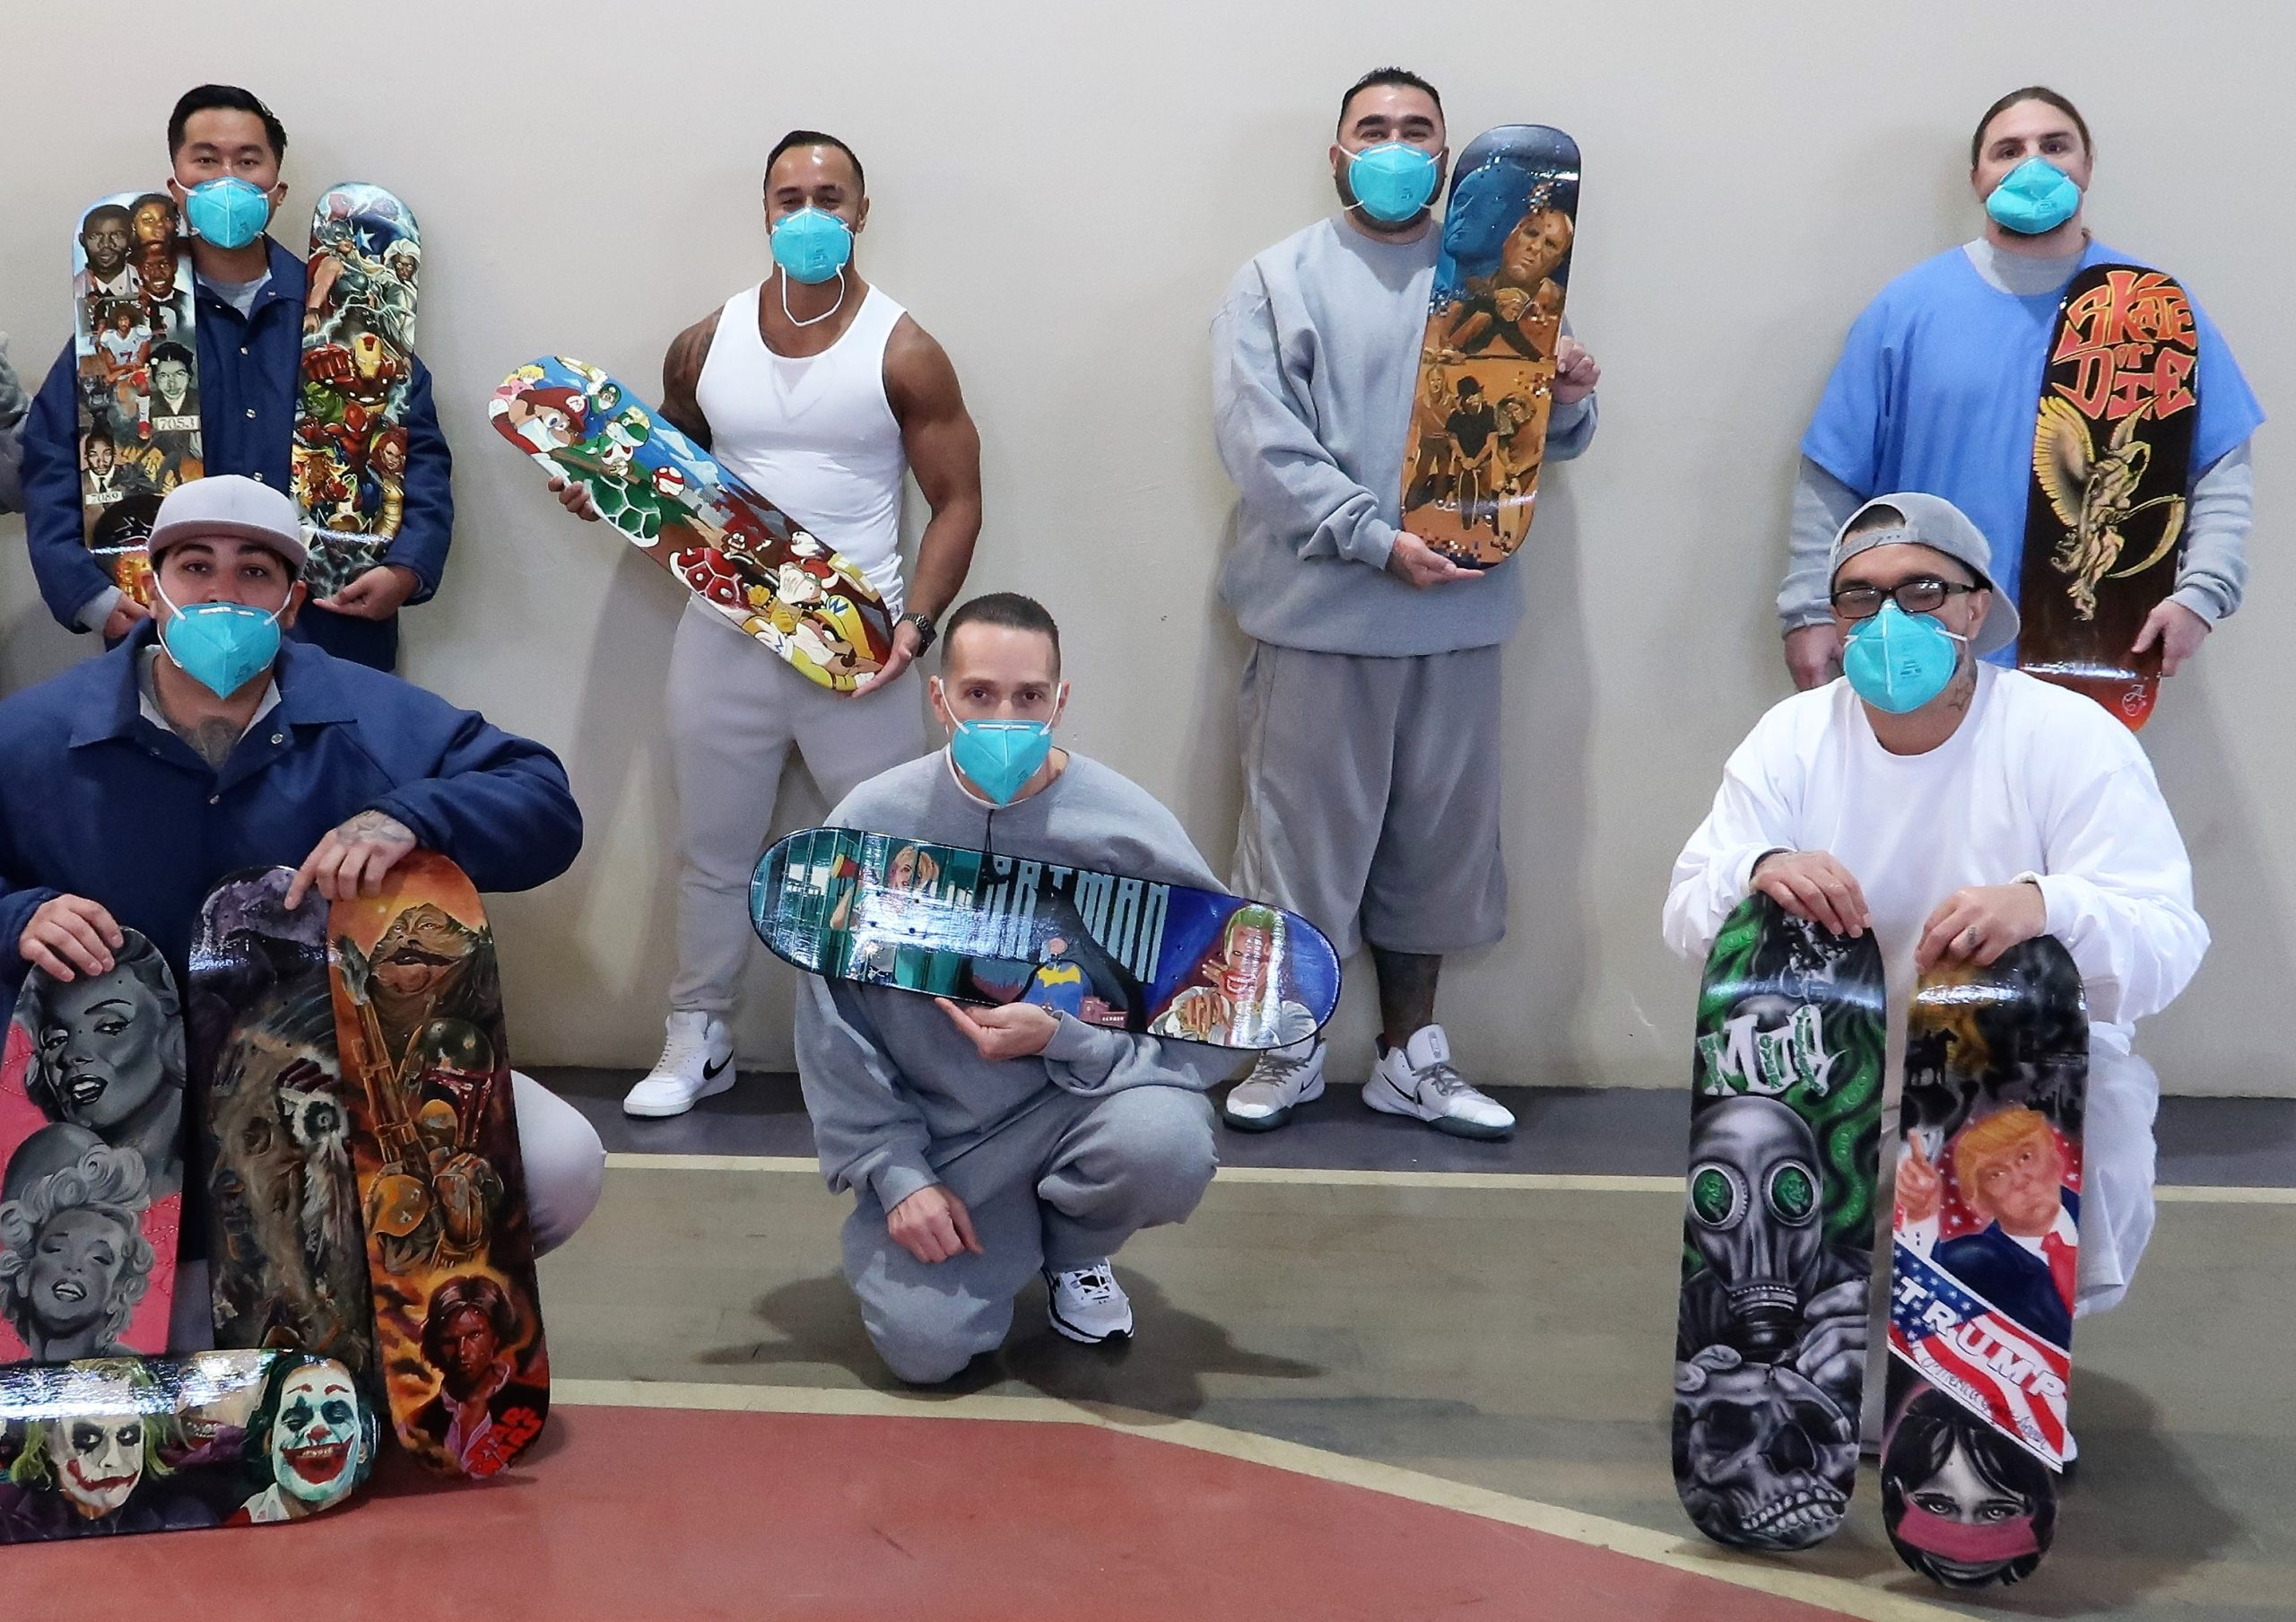 Incarcerated artists hold painted boards.